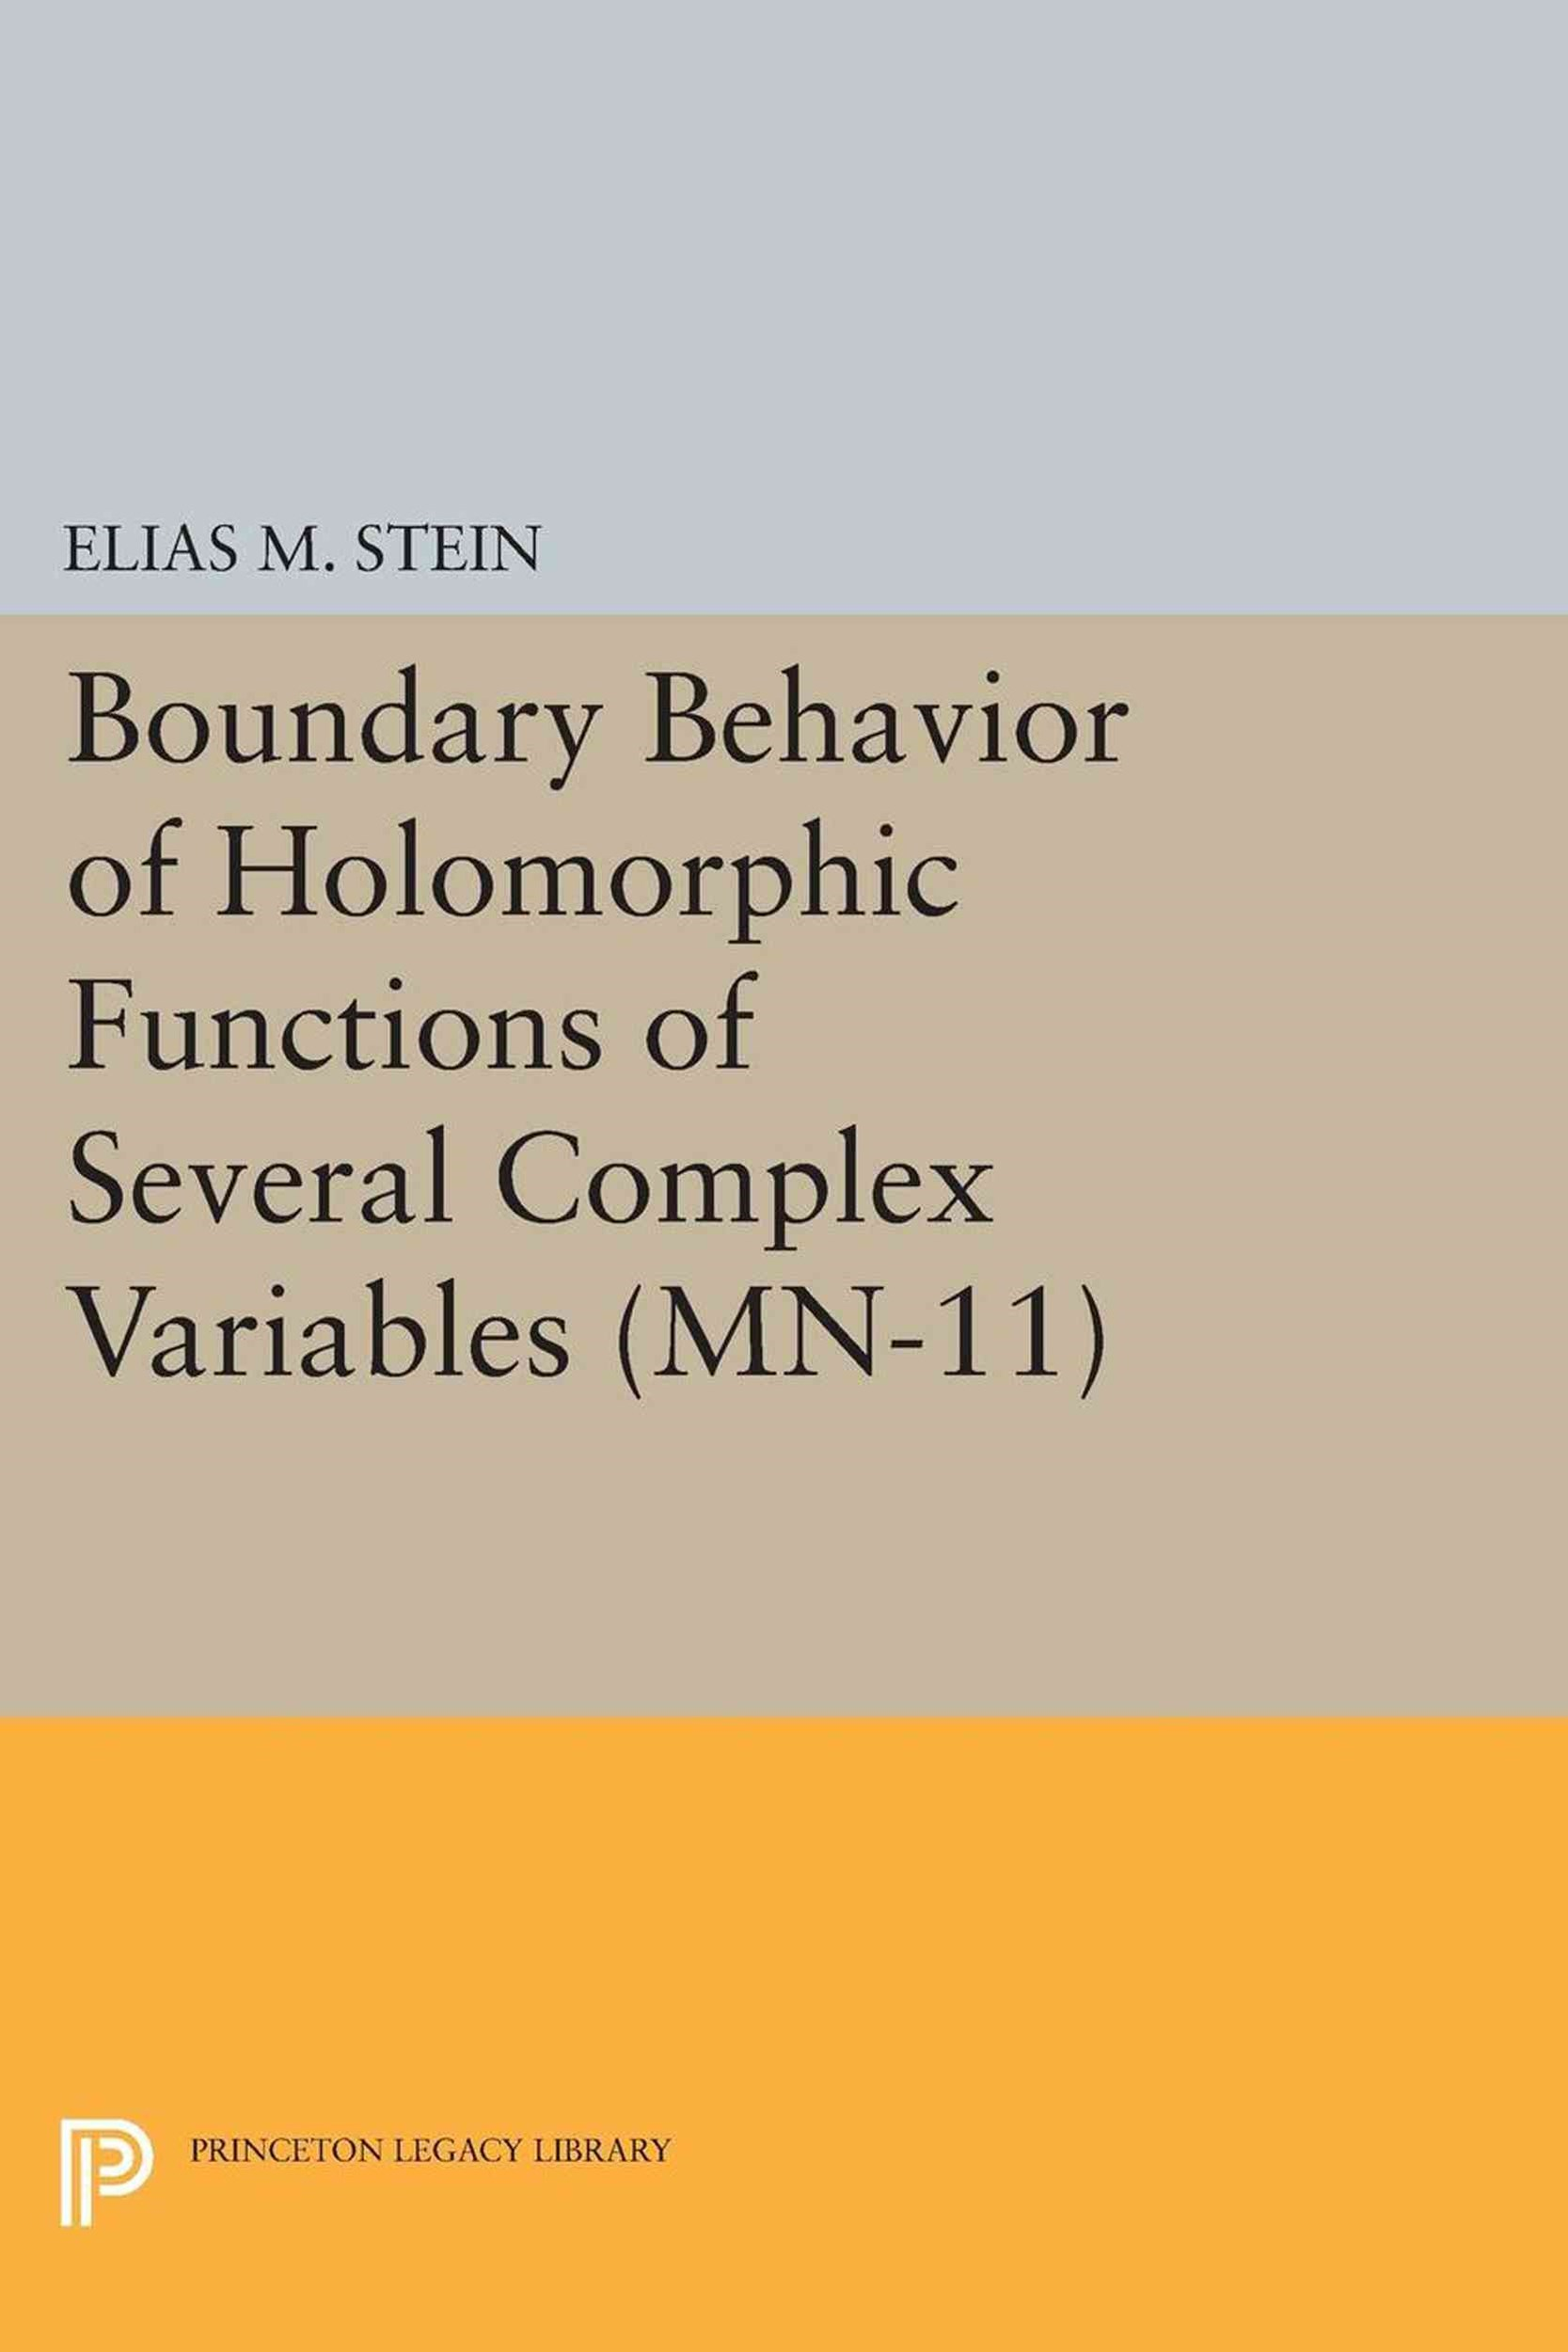 Boundary Behavior of Holomorphic Functions of Several Complex Variables (MN-11)